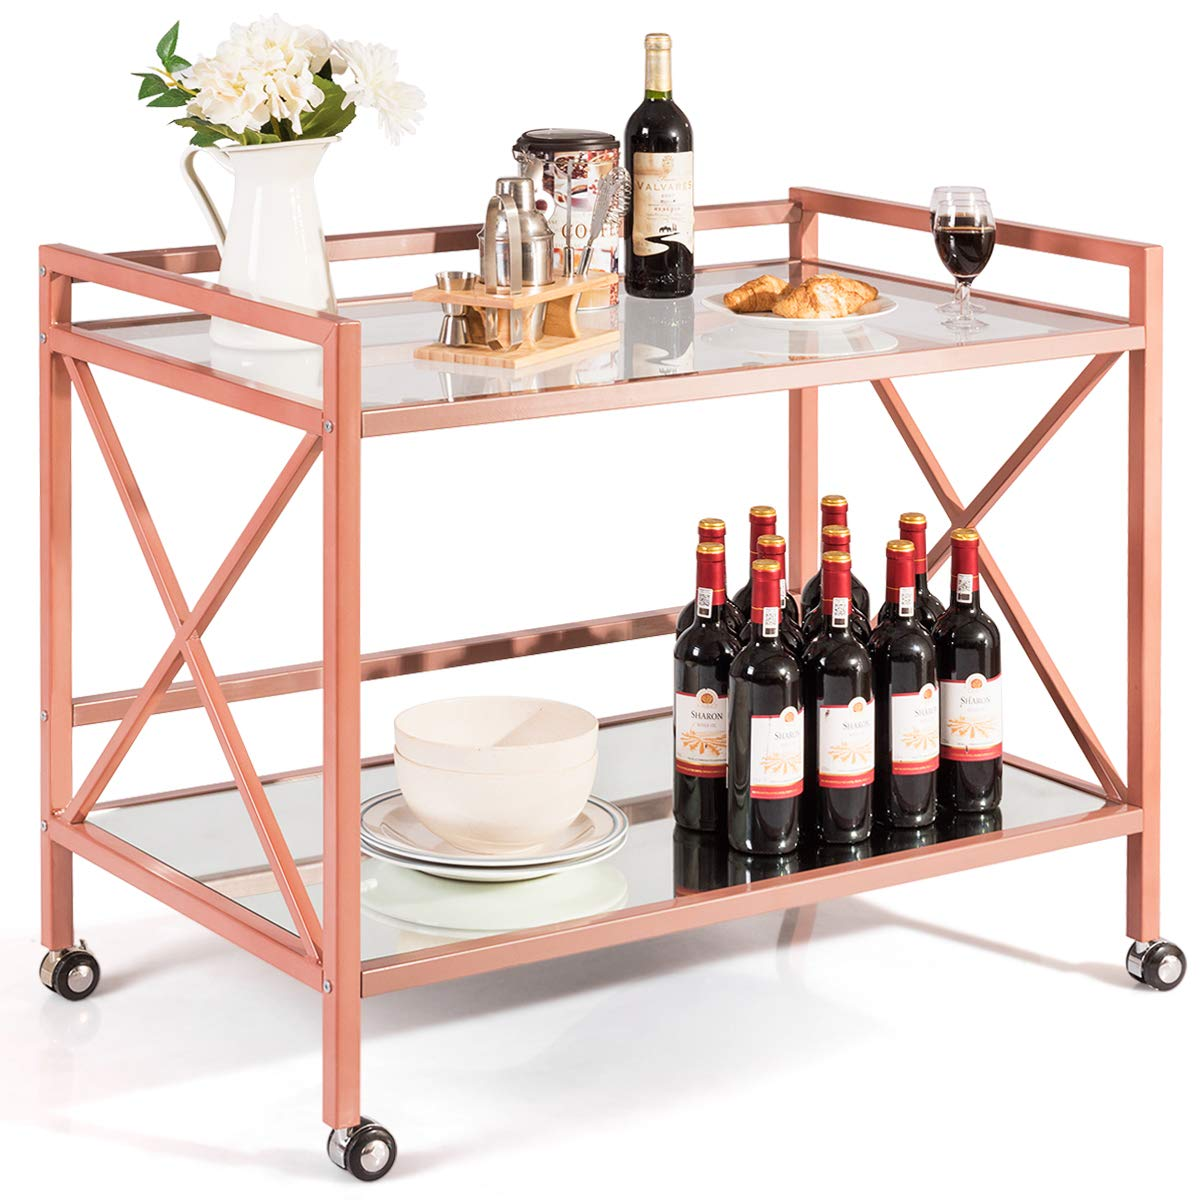 Giantex Bar and Serving Cart 2-Tier, Industrial Modern Wine Tea Cart, Tempered Glass Top Mirrored Bottom, Universal Caster Wheels, Storage Carts for Kitchen Dining Room Commercial Use (Rose Gold) by Giantex